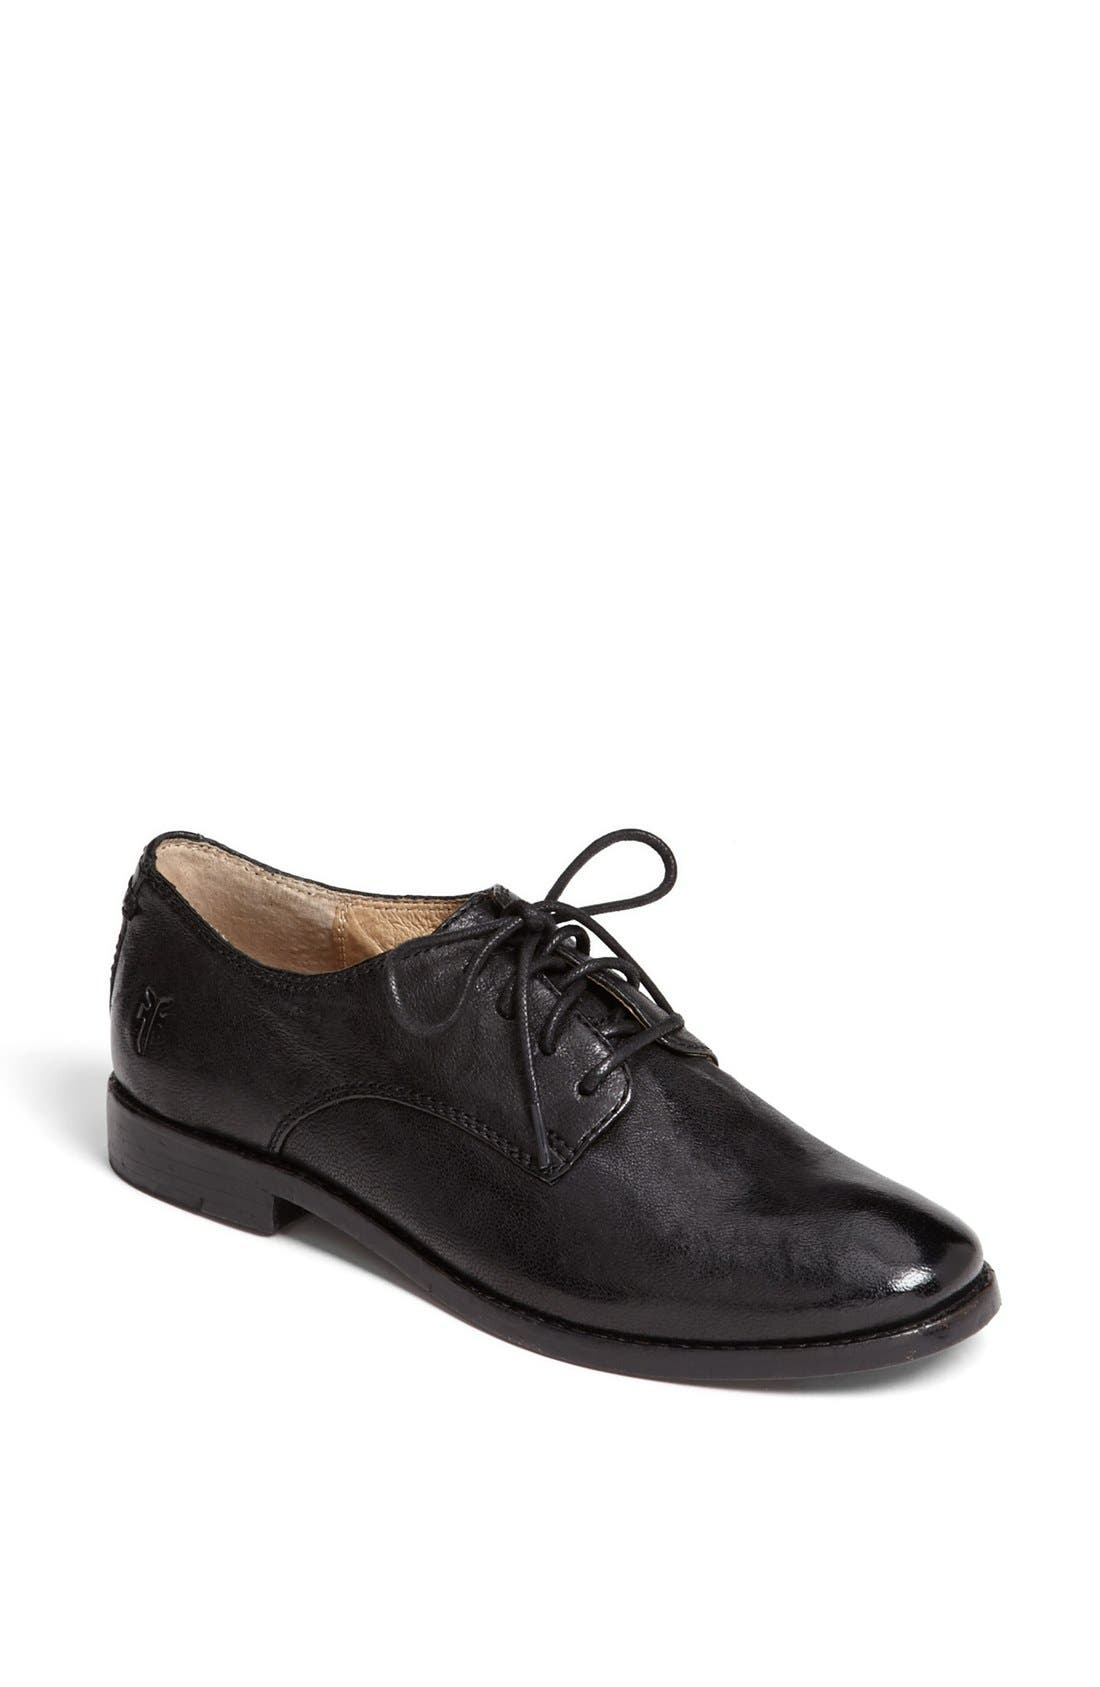 Alternate Image 1 Selected - Frye 'Anna' Oxford Flat (Women)